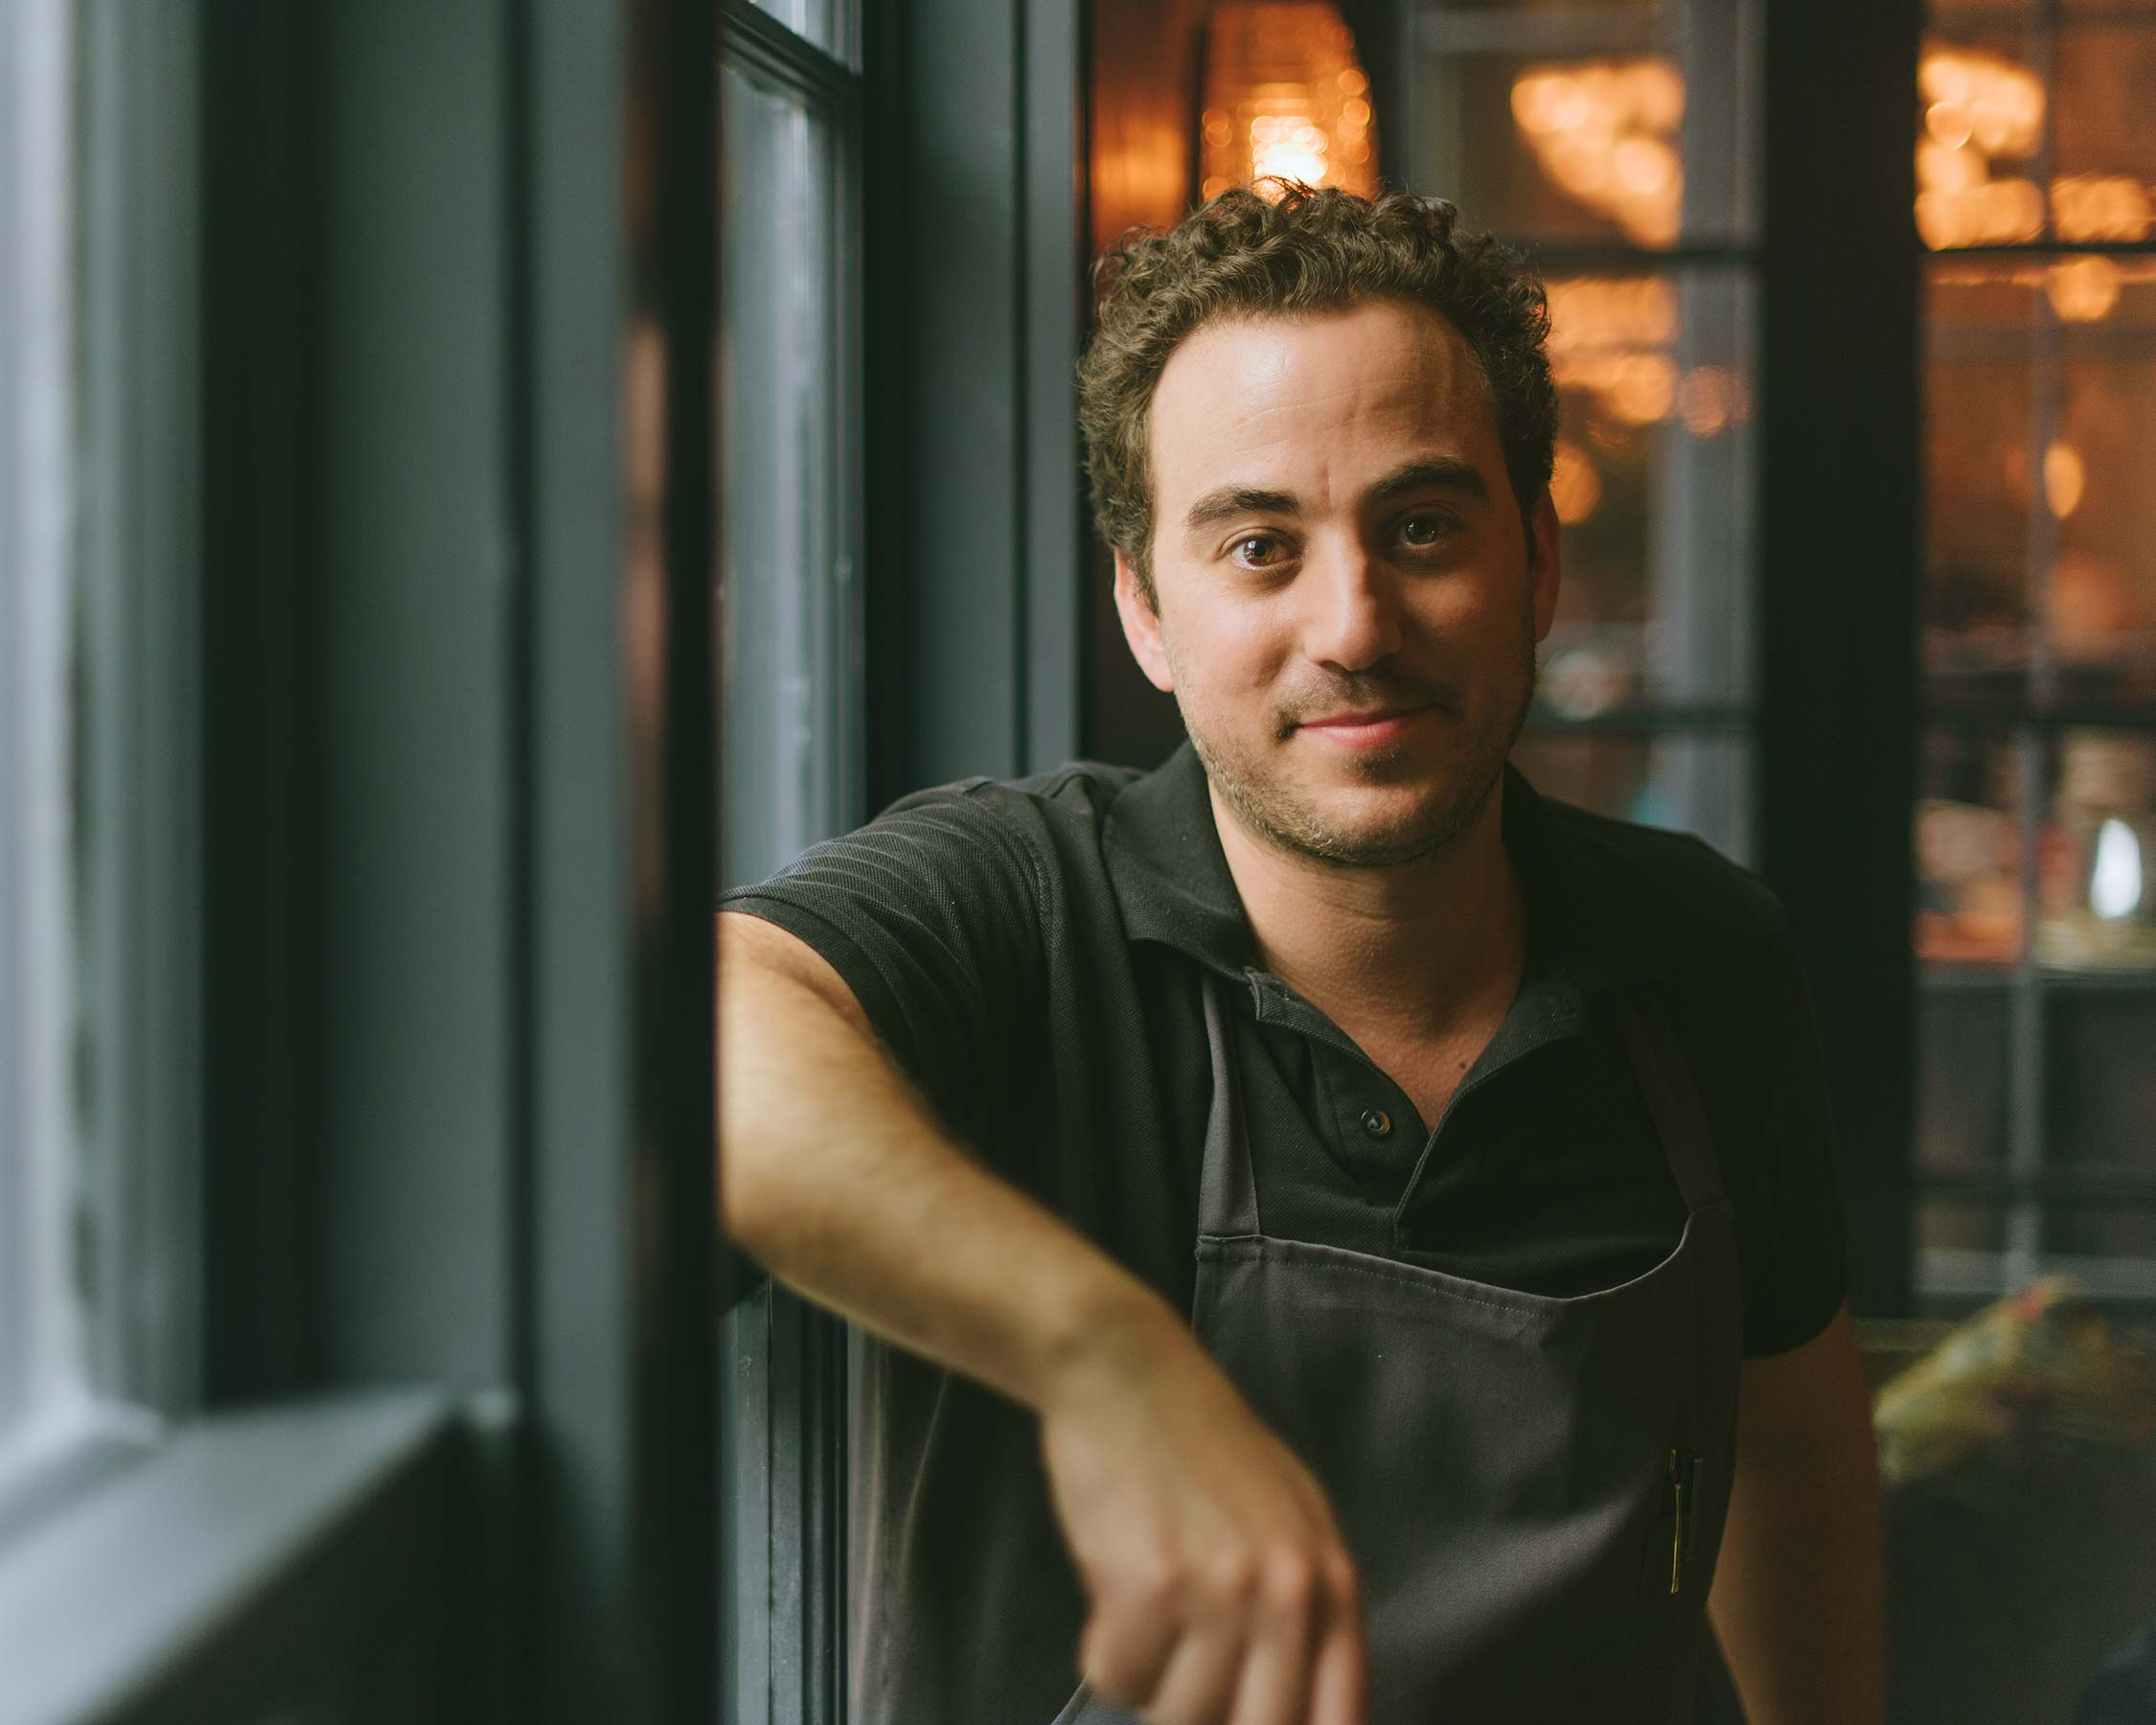 M. Cooper — Chef Daniel Rose / New York Magazine